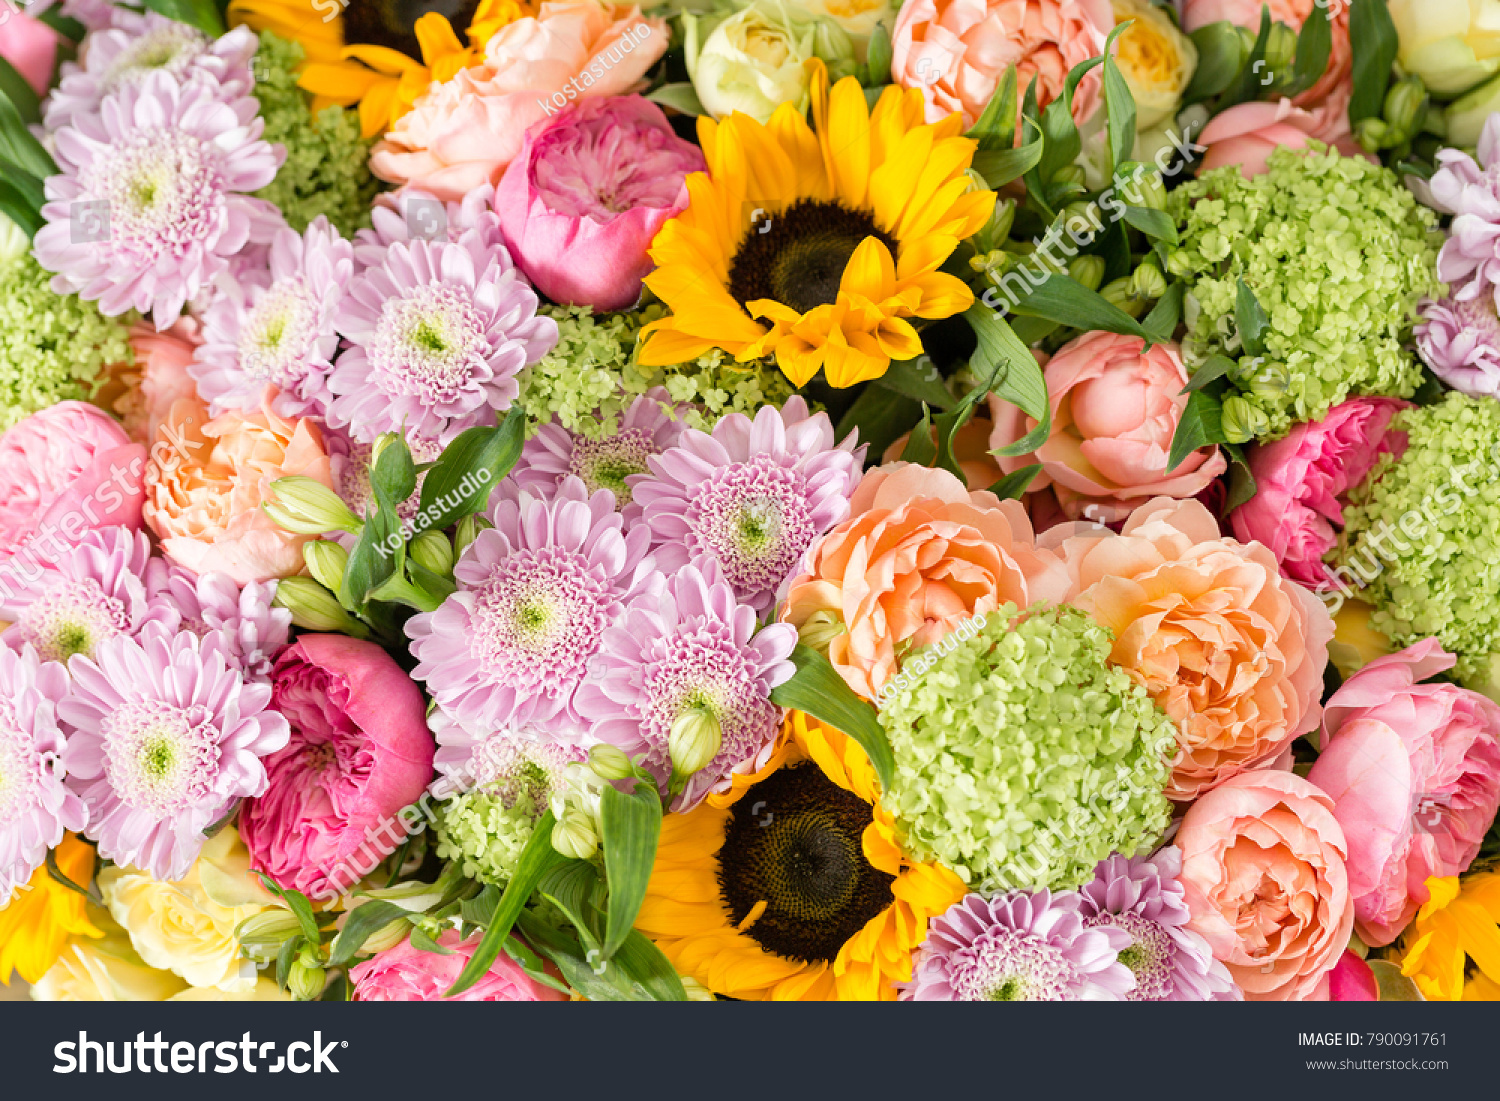 Beautiful bouquet mixed flowers vase on stock photo royalty free beautiful bouquet of mixed flowers in a vase on wooden table the work of the izmirmasajfo